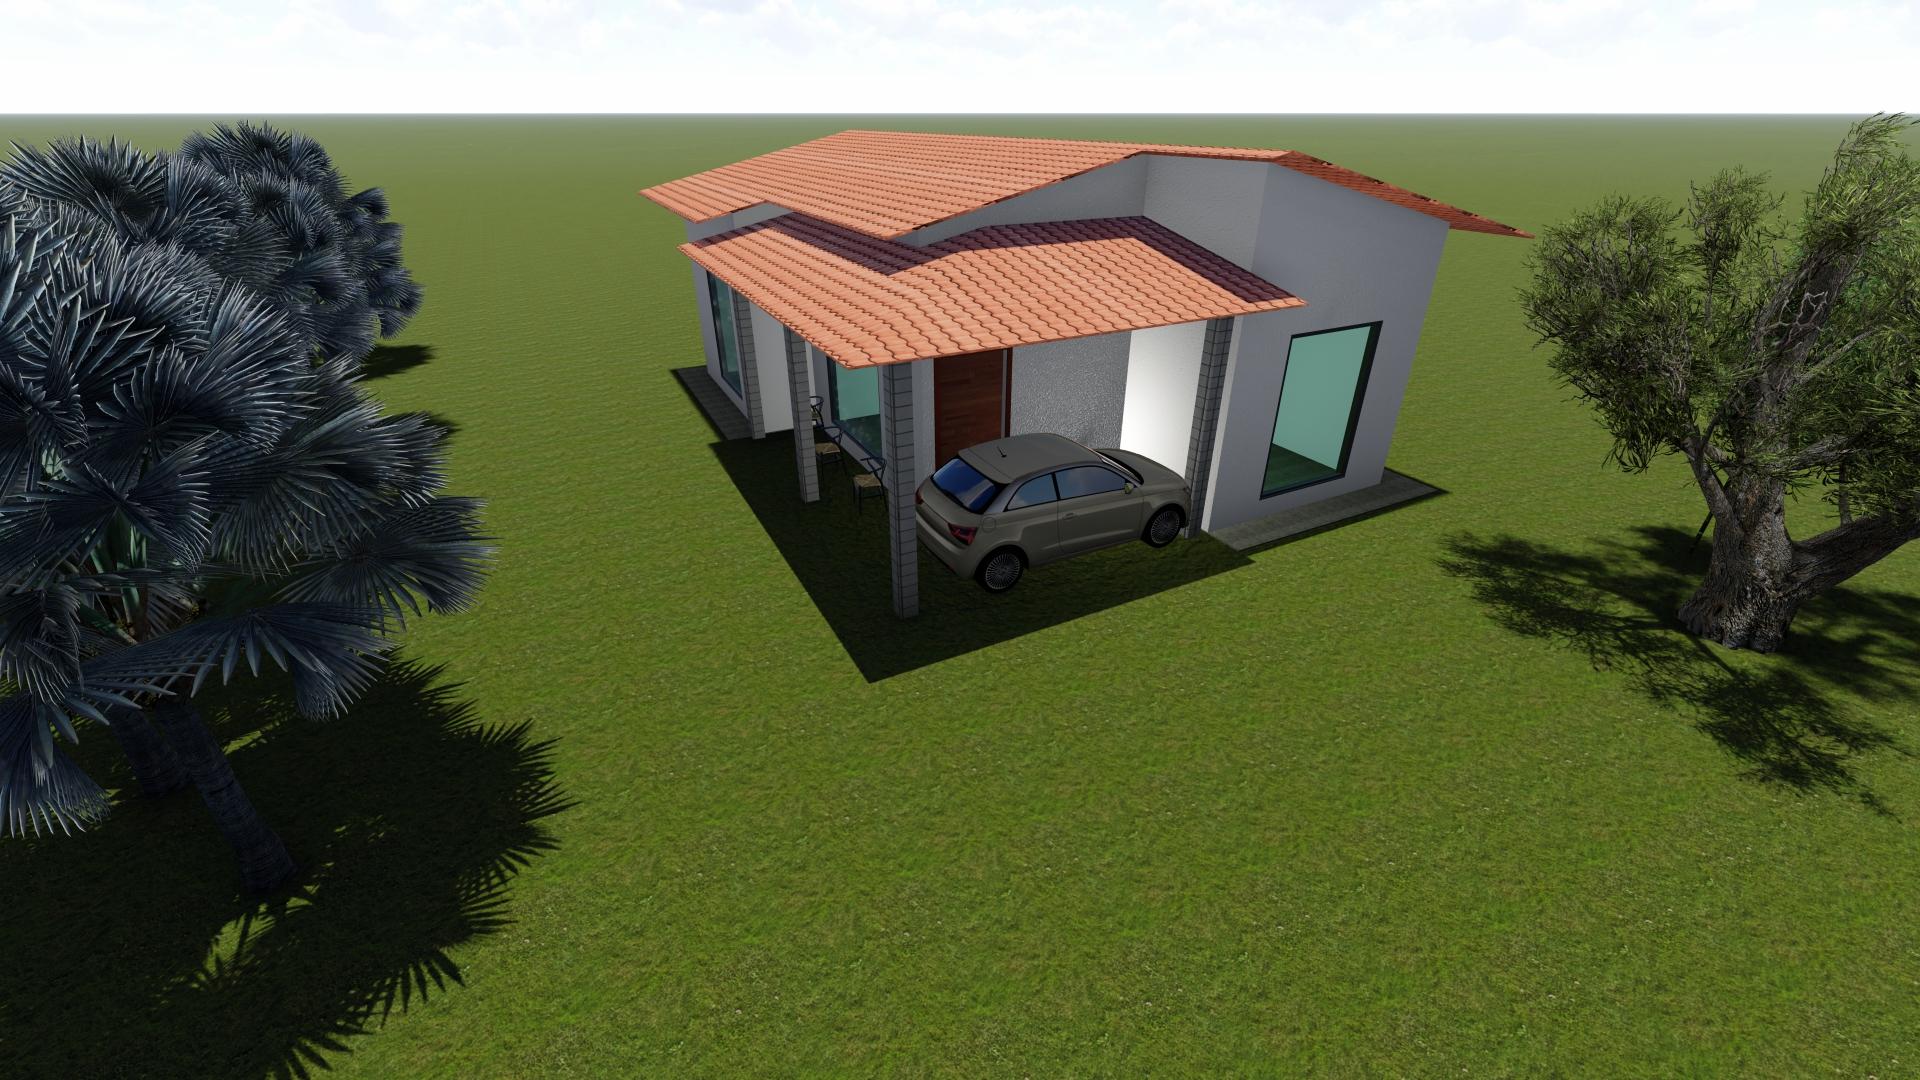 2D,Drawings,Home Design ,Architectural Drawings, KABANA Designs